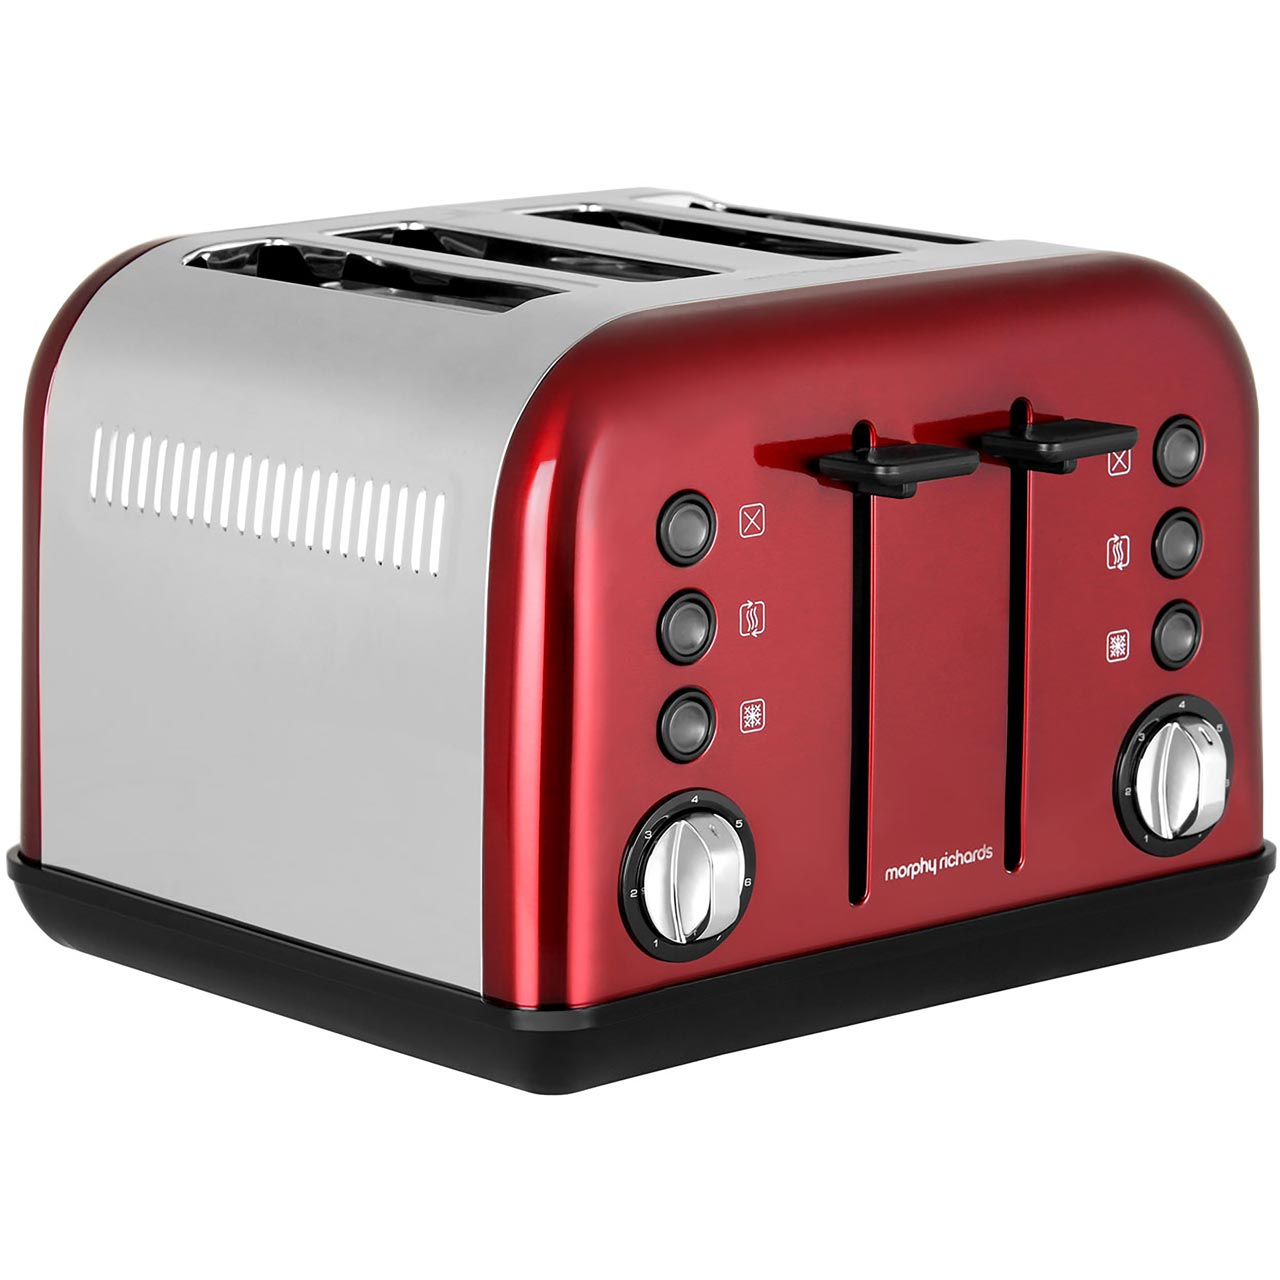 Slicwe Morphy Richards Toaster 4: Morphy Richards 242030 Accents 4 Slice Toaster Red New